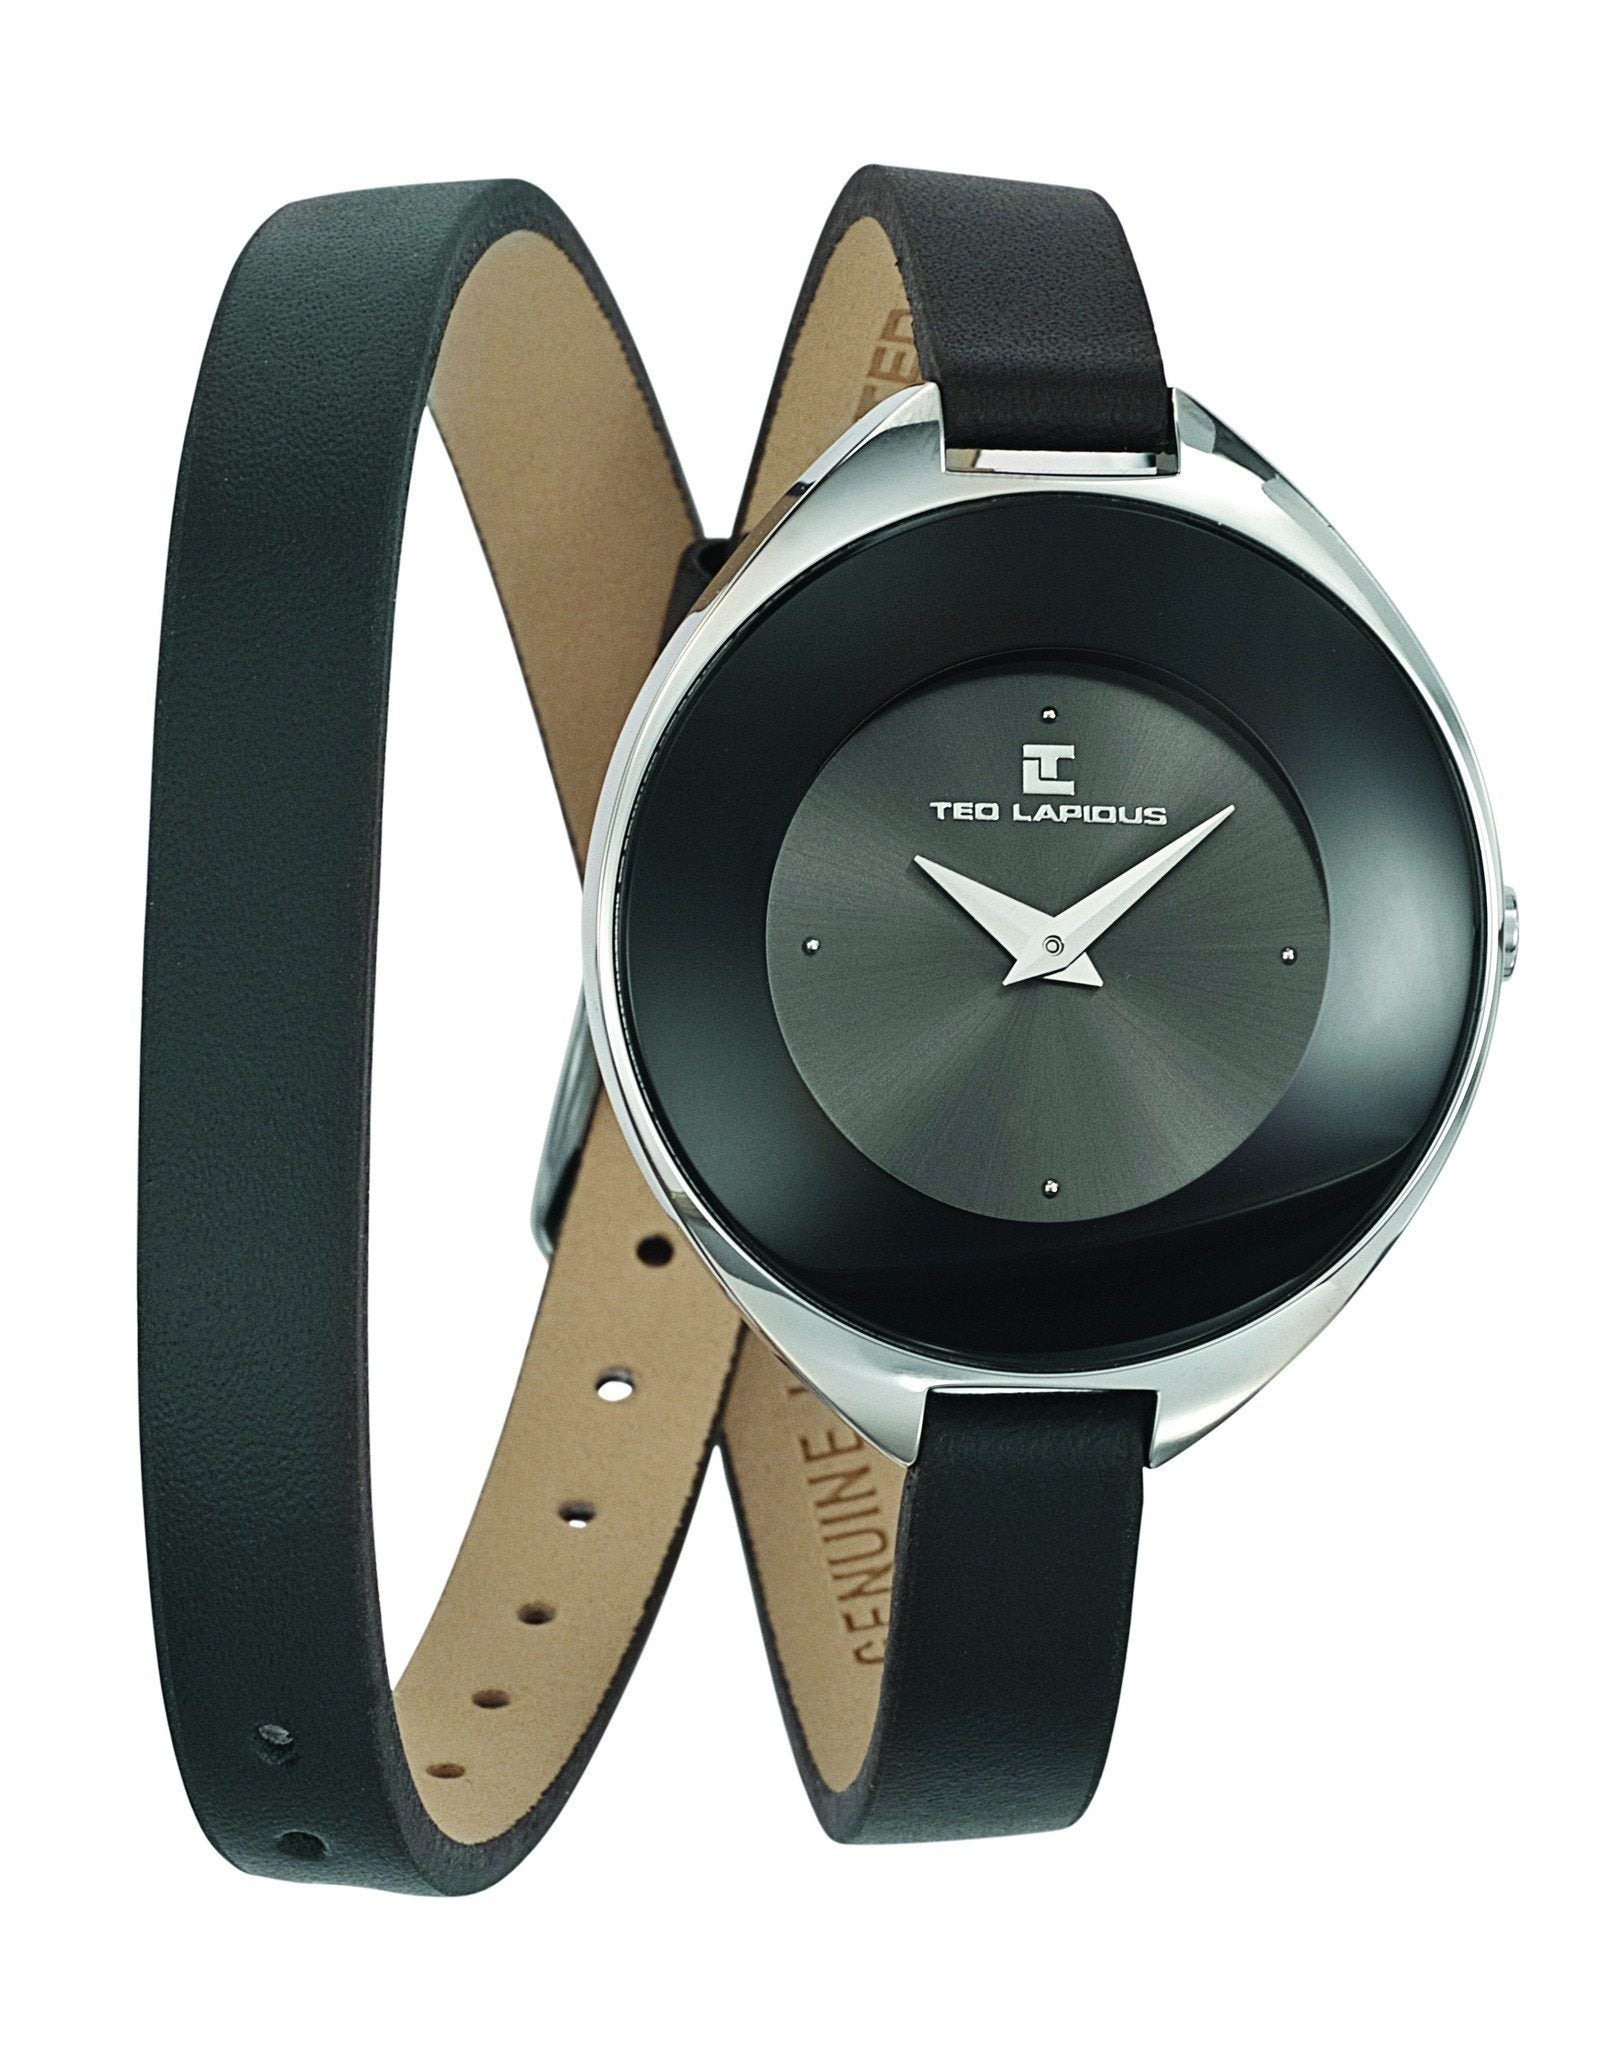 Ted Lapidus Women's Analog Quartz Watch with Black Leather Strap - Ninostyle